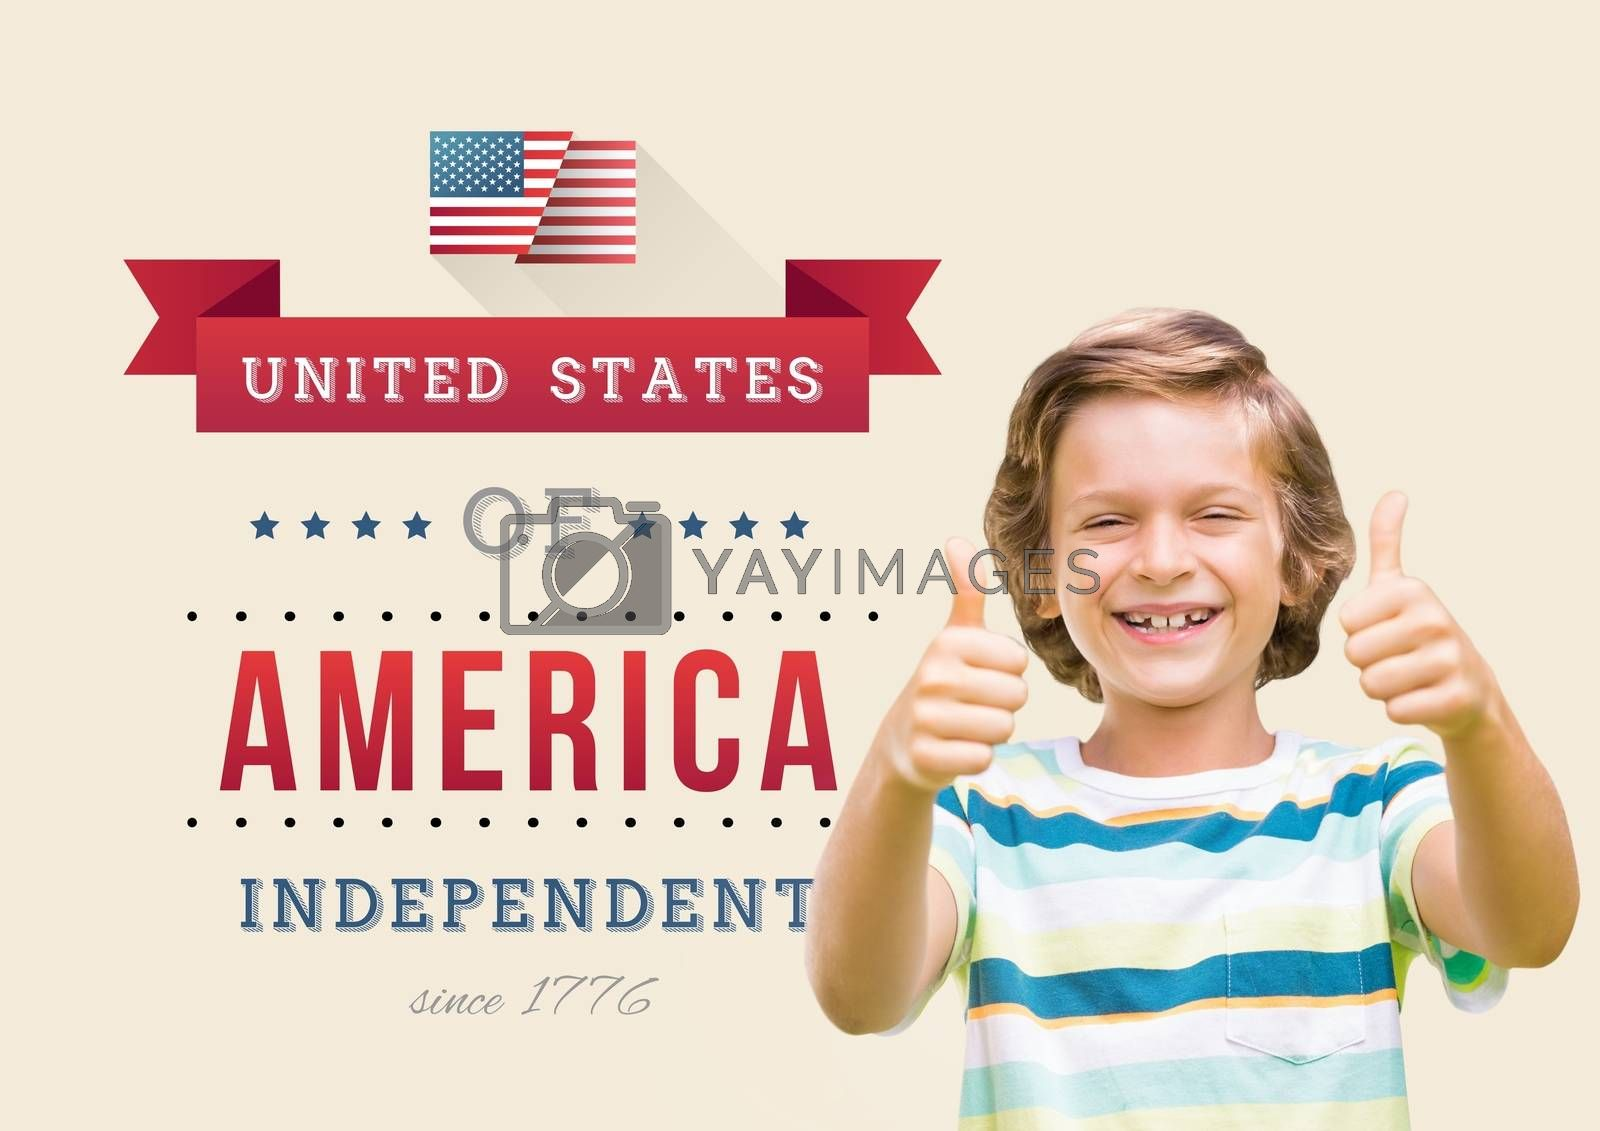 Children with thumbs of for the 4th of July by Wavebreakmedia